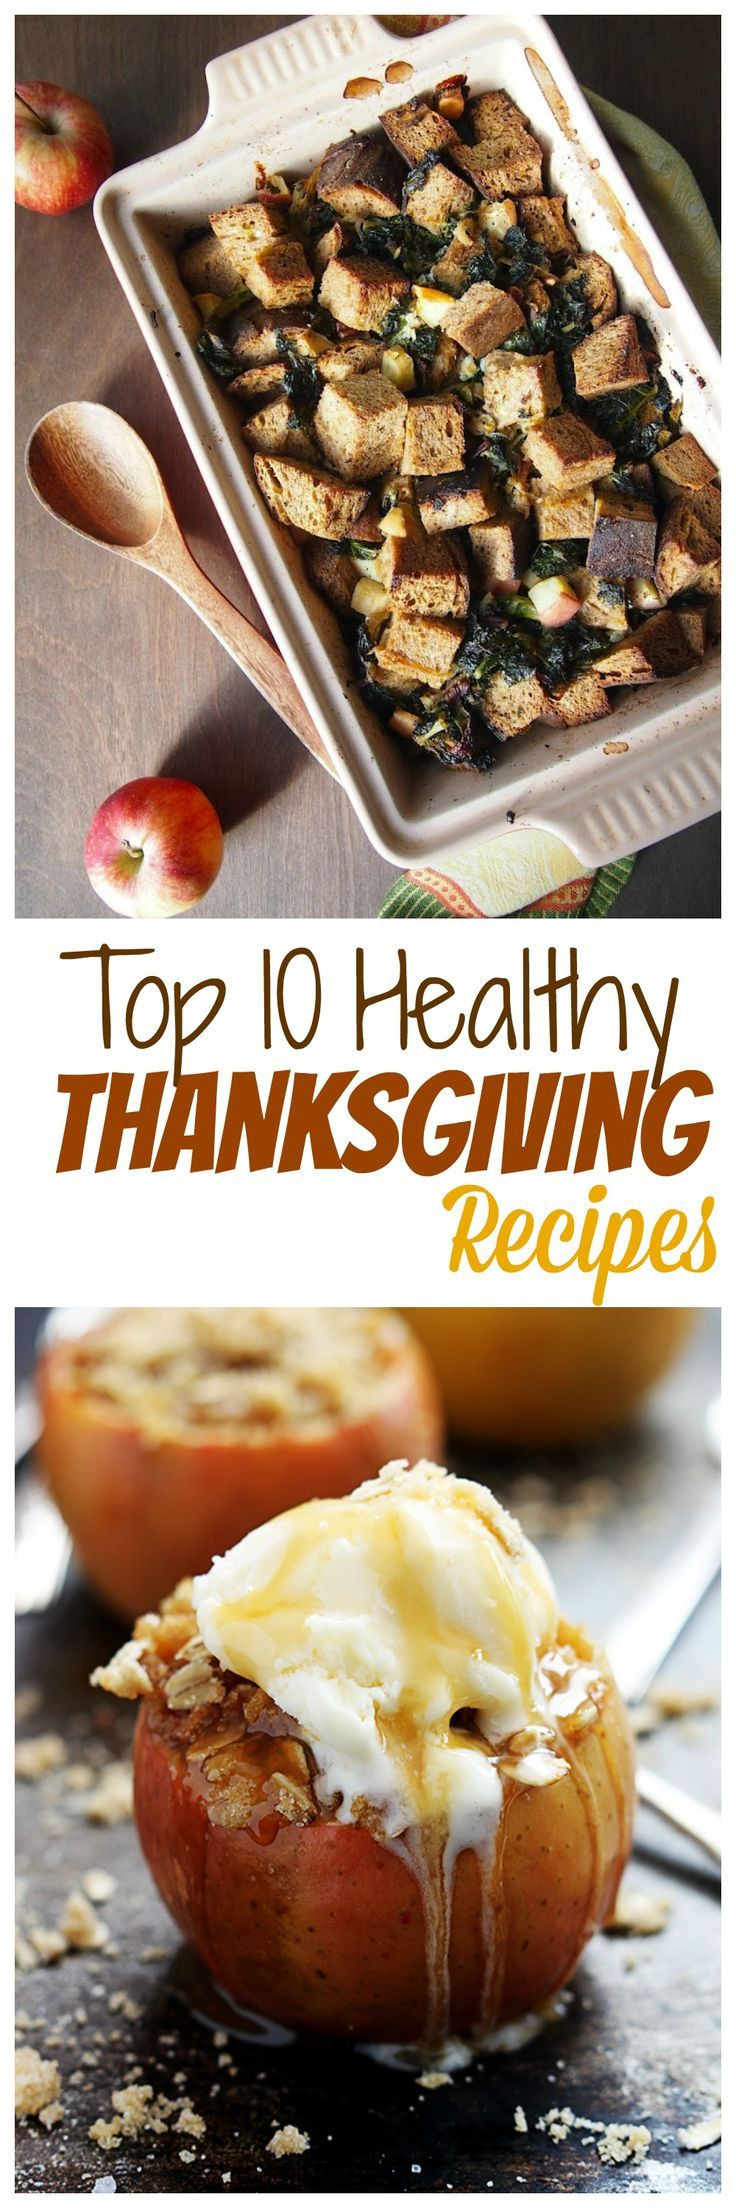 Thanksgiving Desserts List  10 Best Healthy Thanksgiving Recipes for Low Calorie Sides